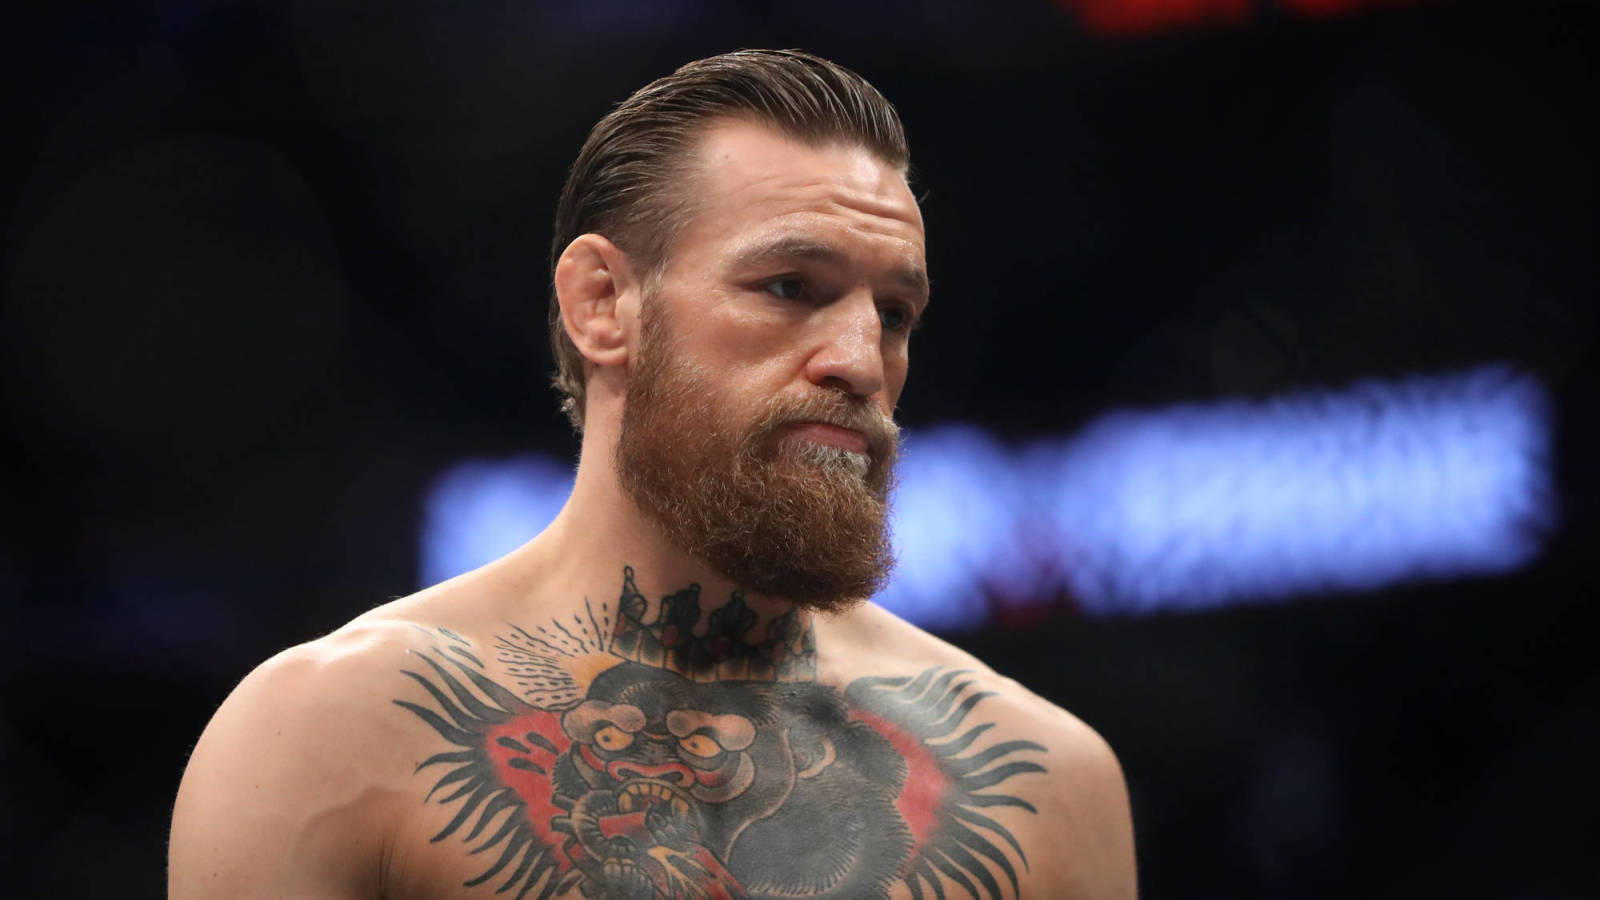 Conor McGregor to fight Dustin Poirier in rematch at UFC 257